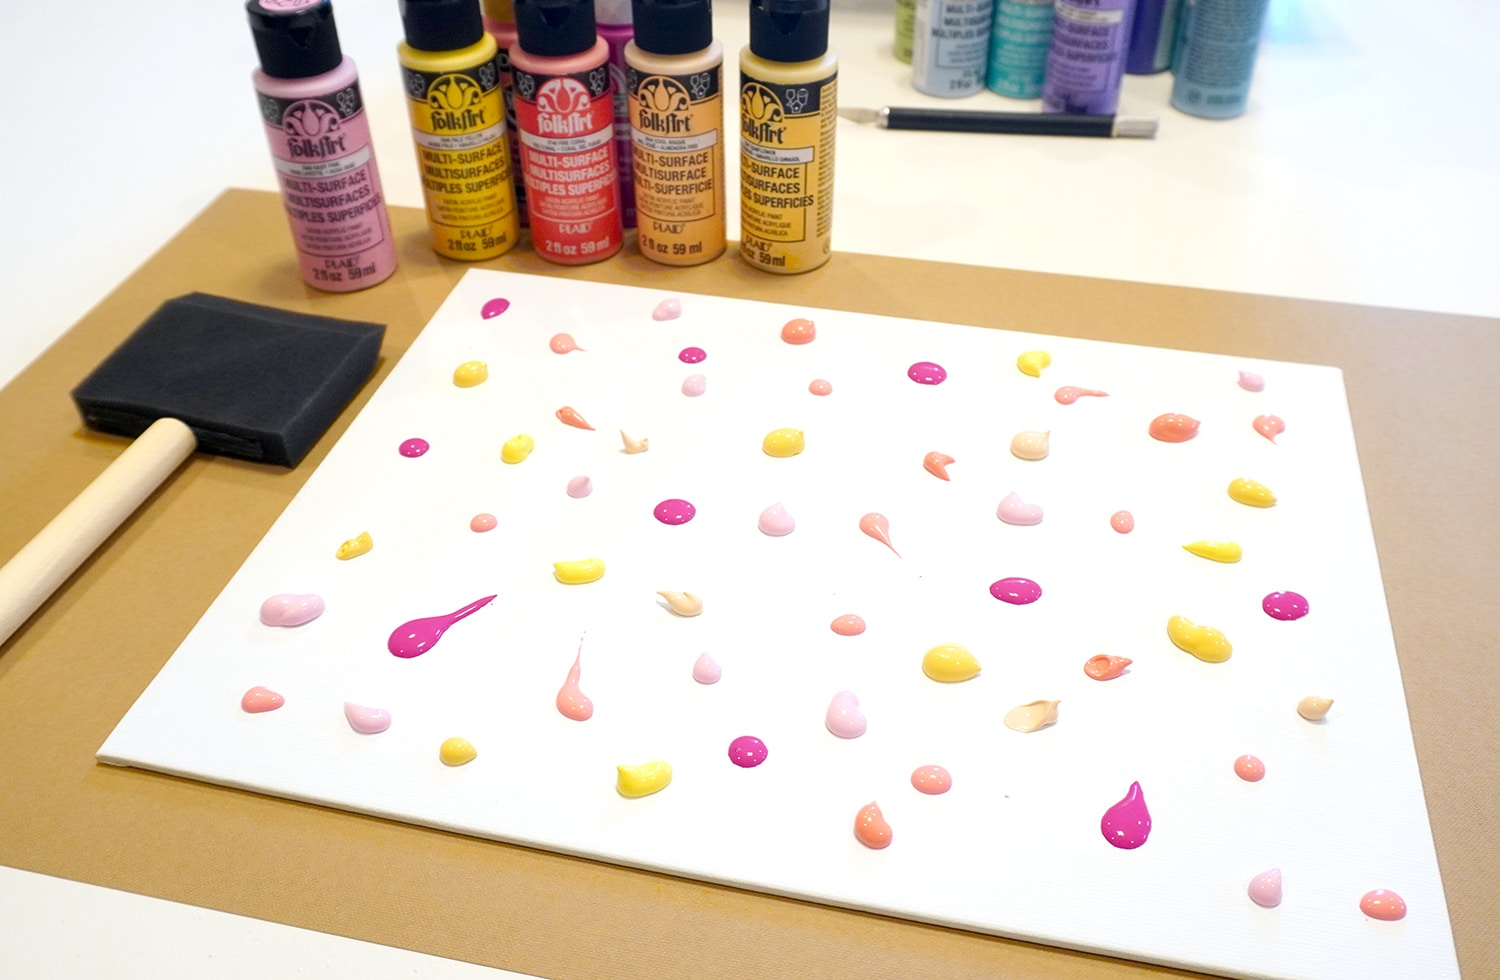 Colorful acrylic paint drops and blobs on canvas